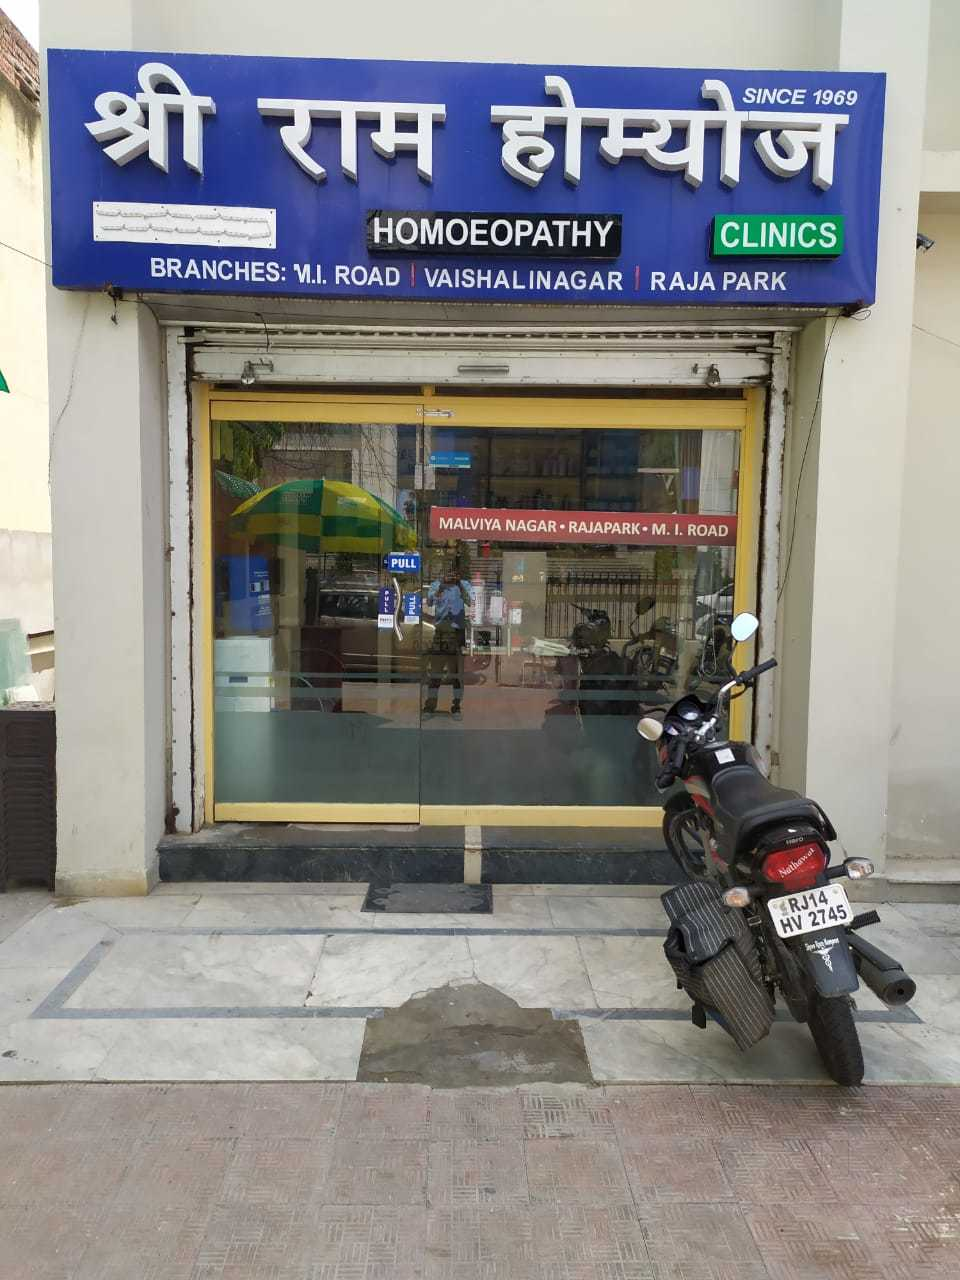 Top 30 Dr Reckeweg Homeopathic Medicine Retailers in Jaipur - Best